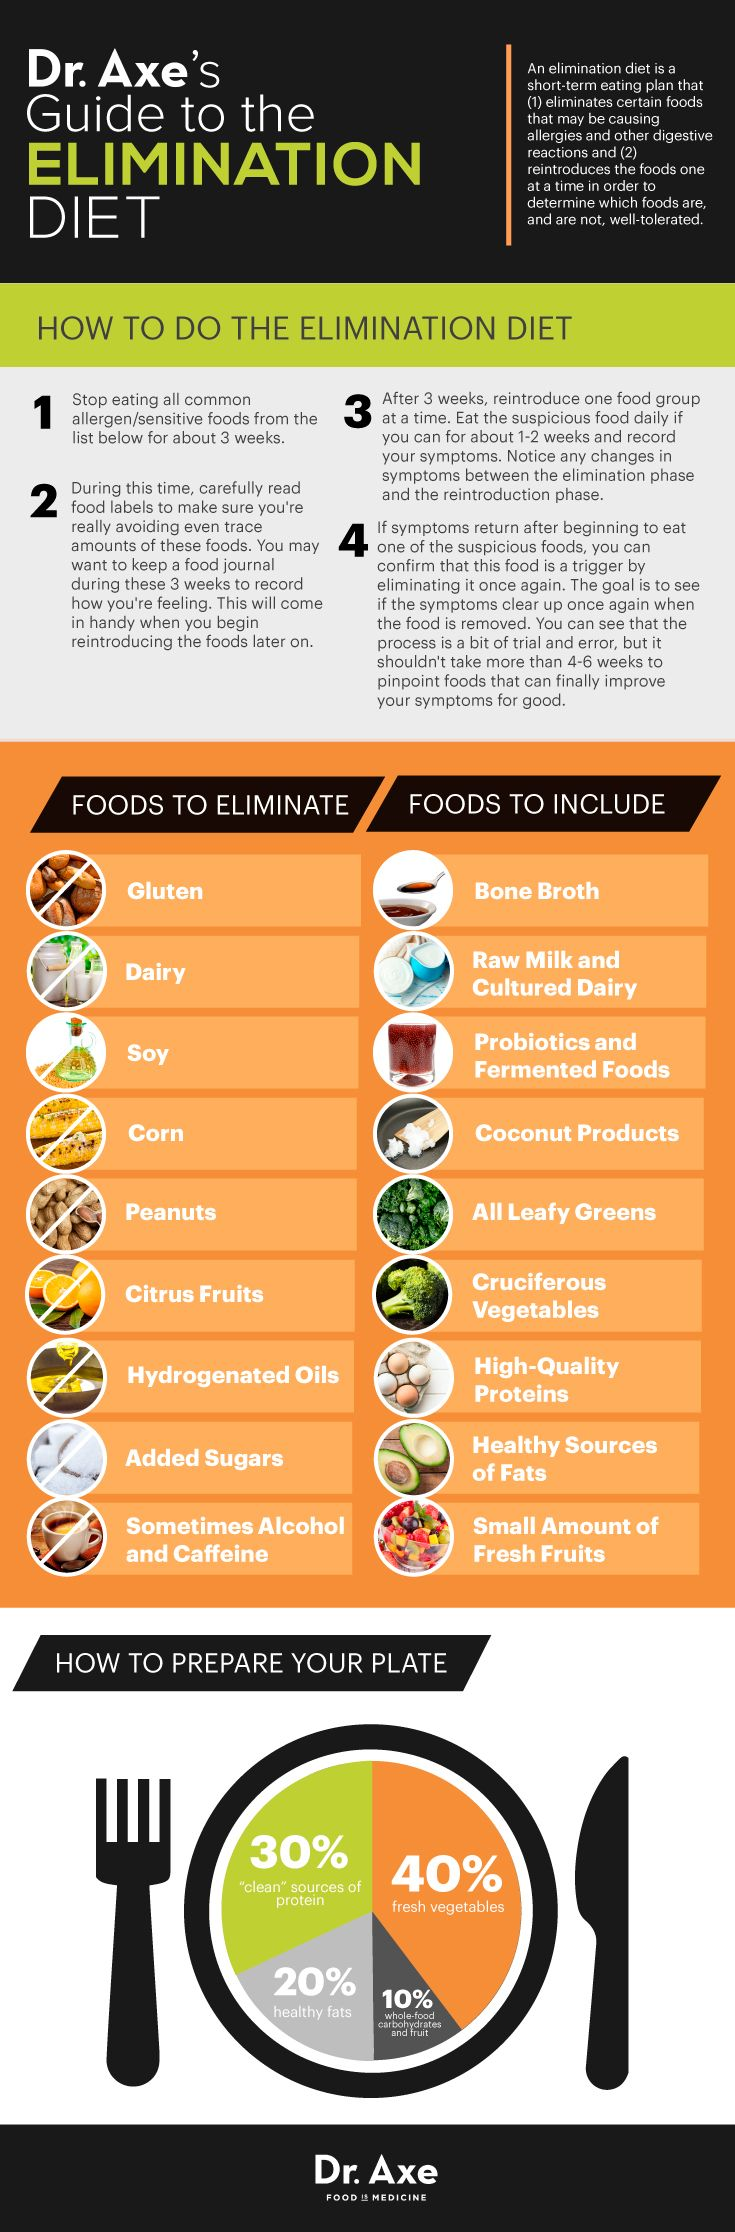 How bizar thus is my diet. Elimination diet guide http://www.draxe.com #health #Holistic #natural